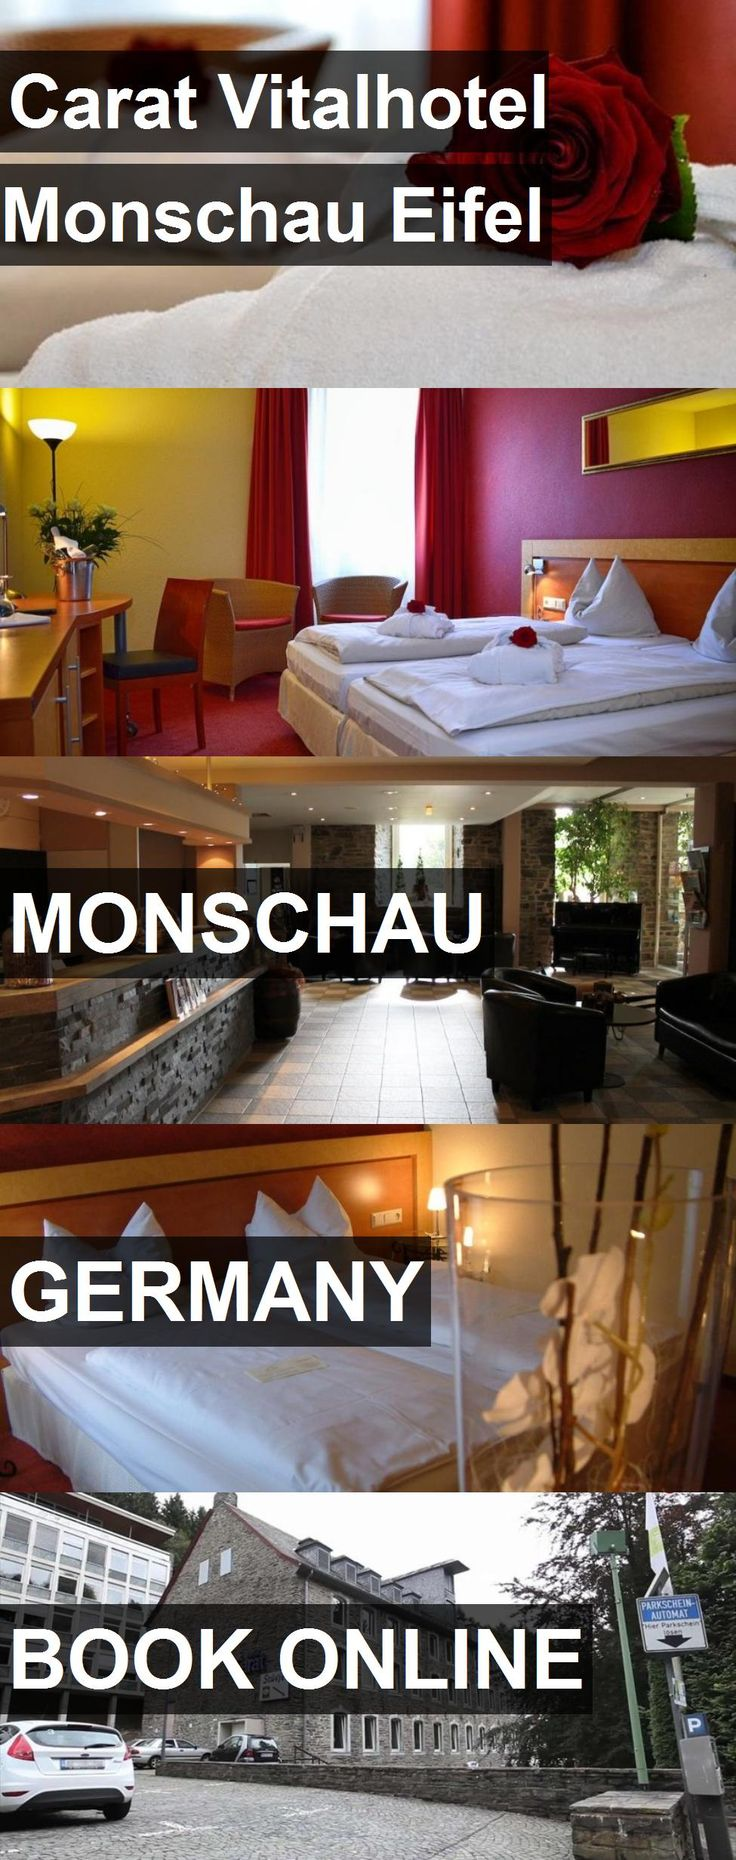 Carat Vitalhotel Monschau Eifel in Monschau, Germany. For more information, photos, reviews and best prices please follow the link. #Germany #Monschau #travel #vacation #hotel